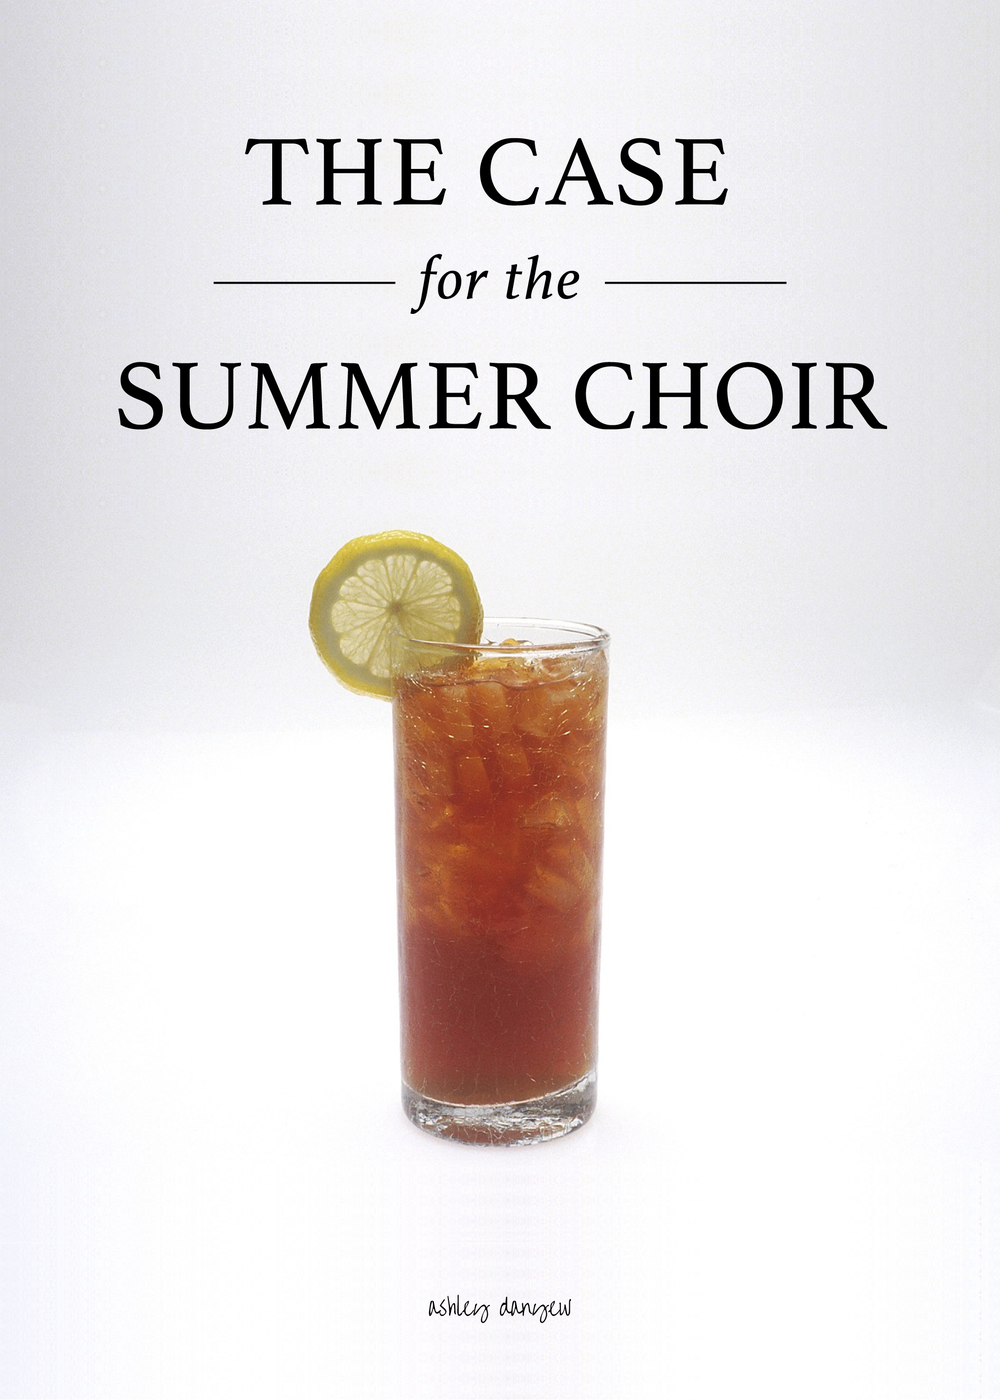 Copy of The Case for the Summer Choir